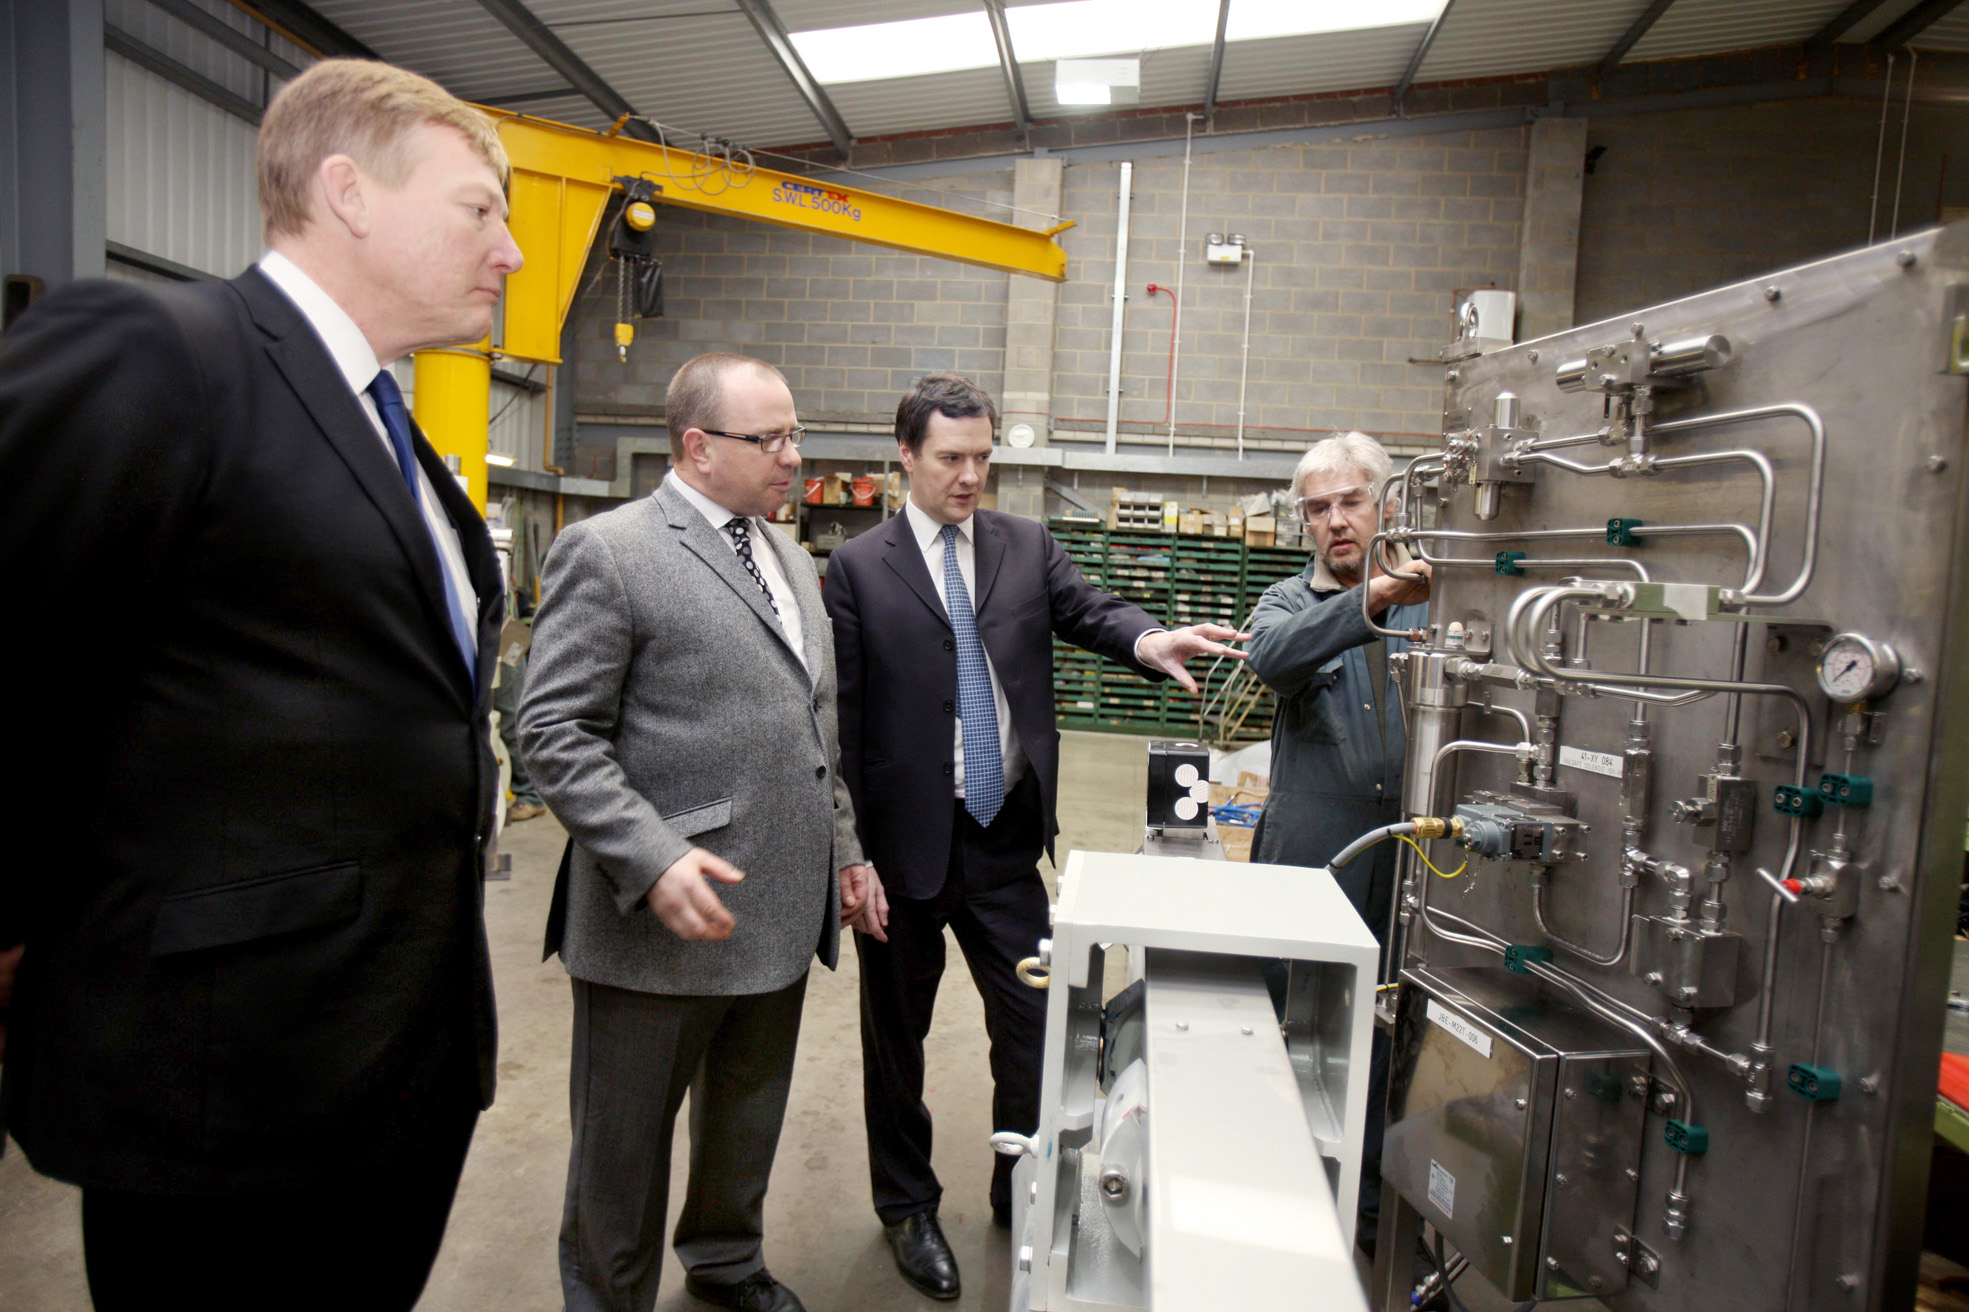 Chancellor George Osborne tours Advanced Actuators with MP Kris Hopkins (left) and company director Chris Woodhead